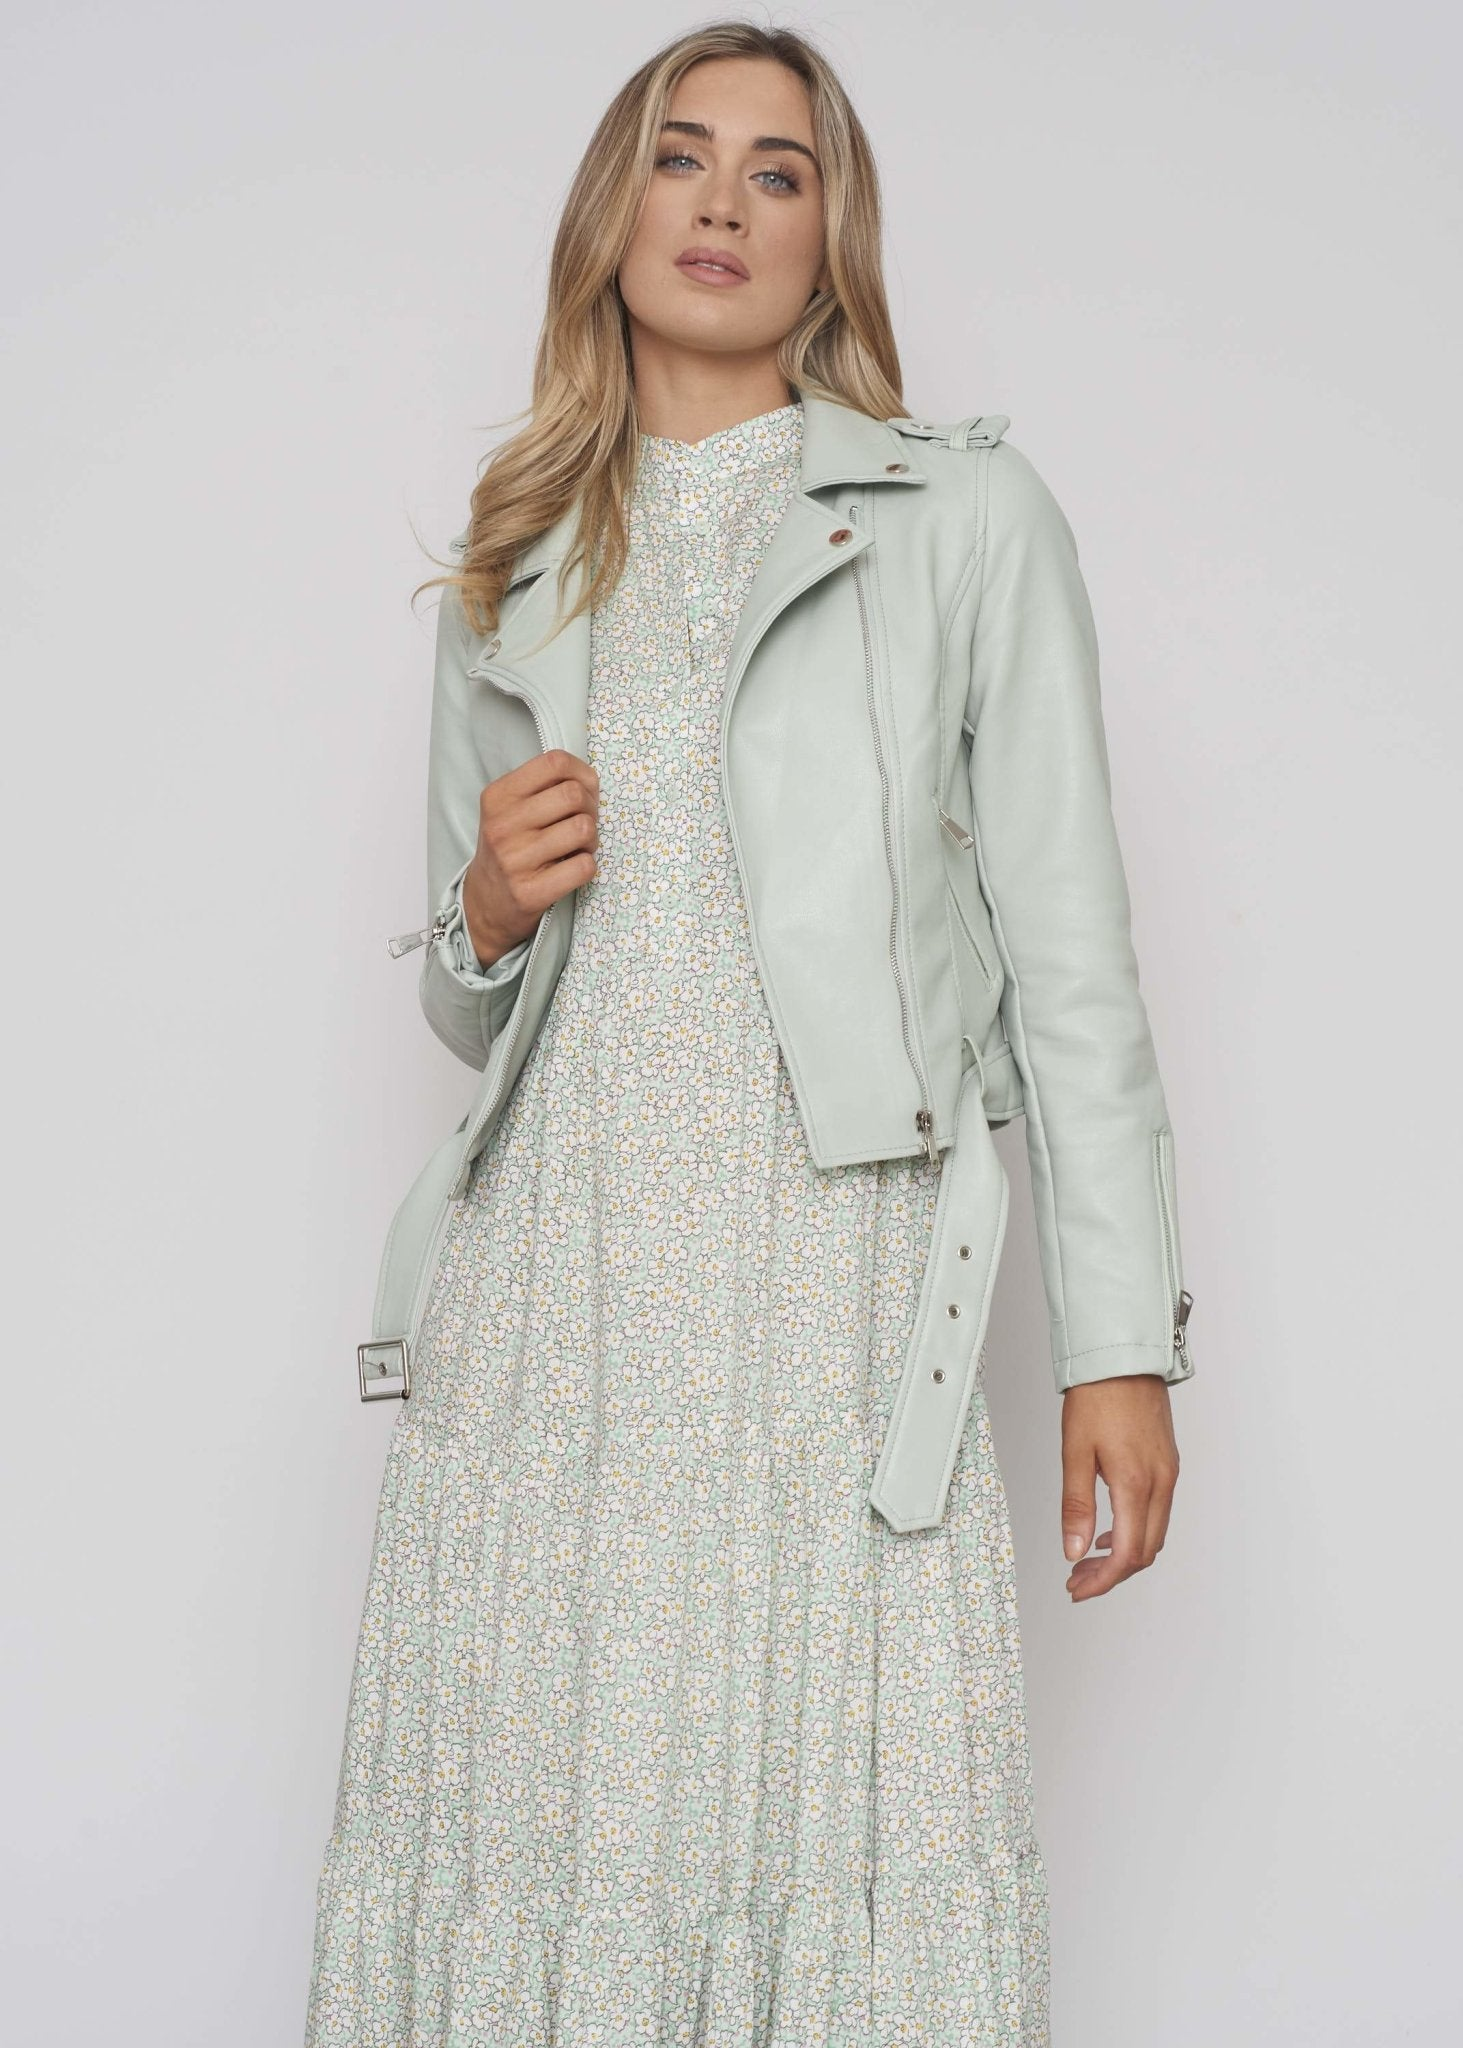 Caitlyn Belted Leather Jacket In Sage - The Walk in Wardrobe